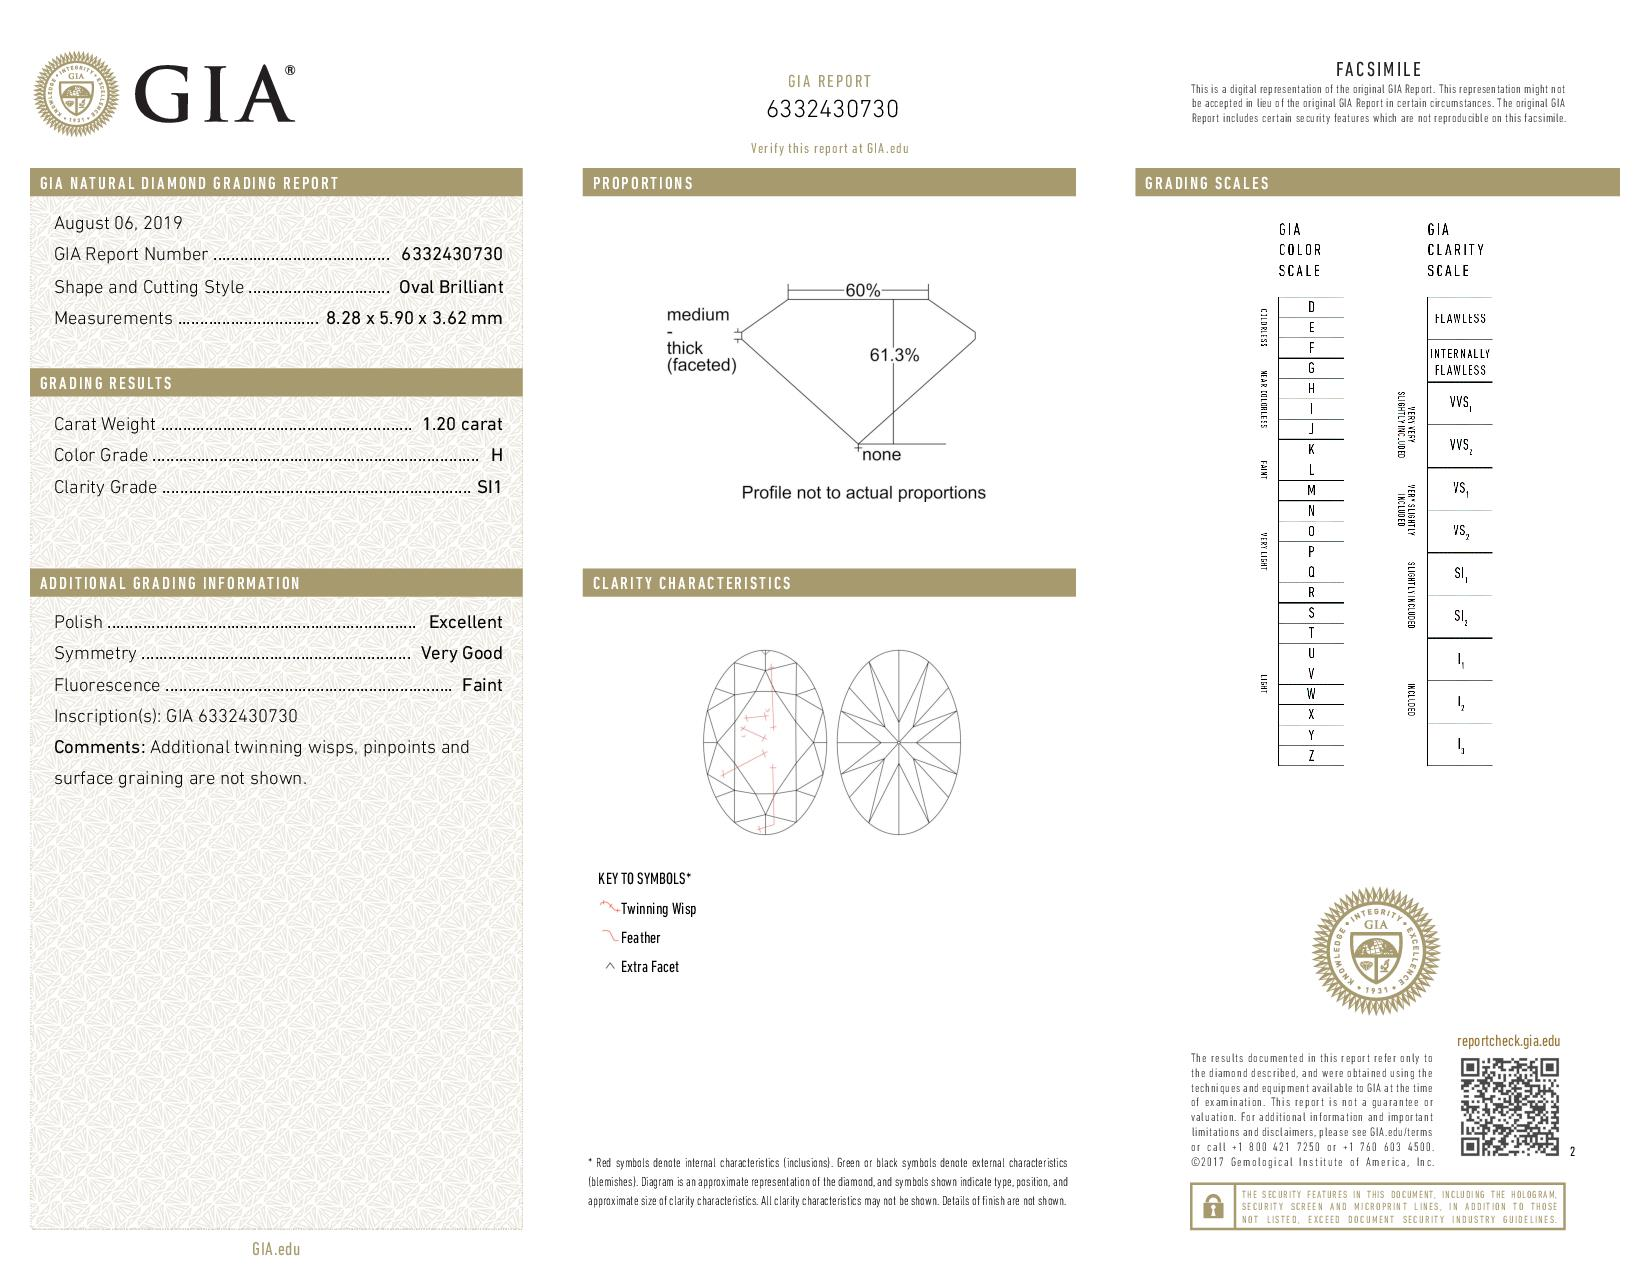 This is a 1.20 carat oval shape, H color, SI1 clarity natural diamond accompanied by a GIA grading report.